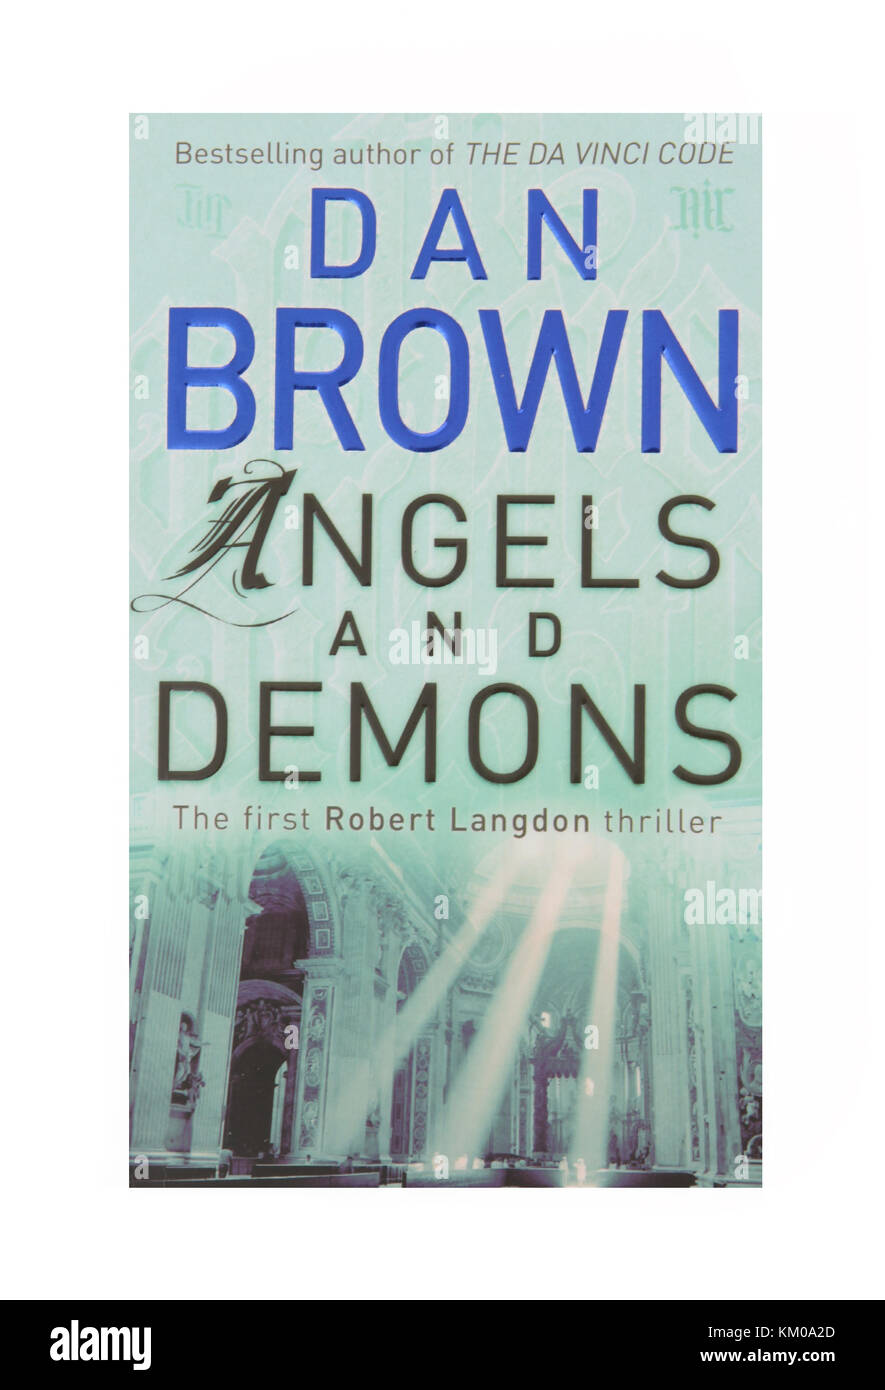 The book Angels and Demons by Dan Brown - Stock Image